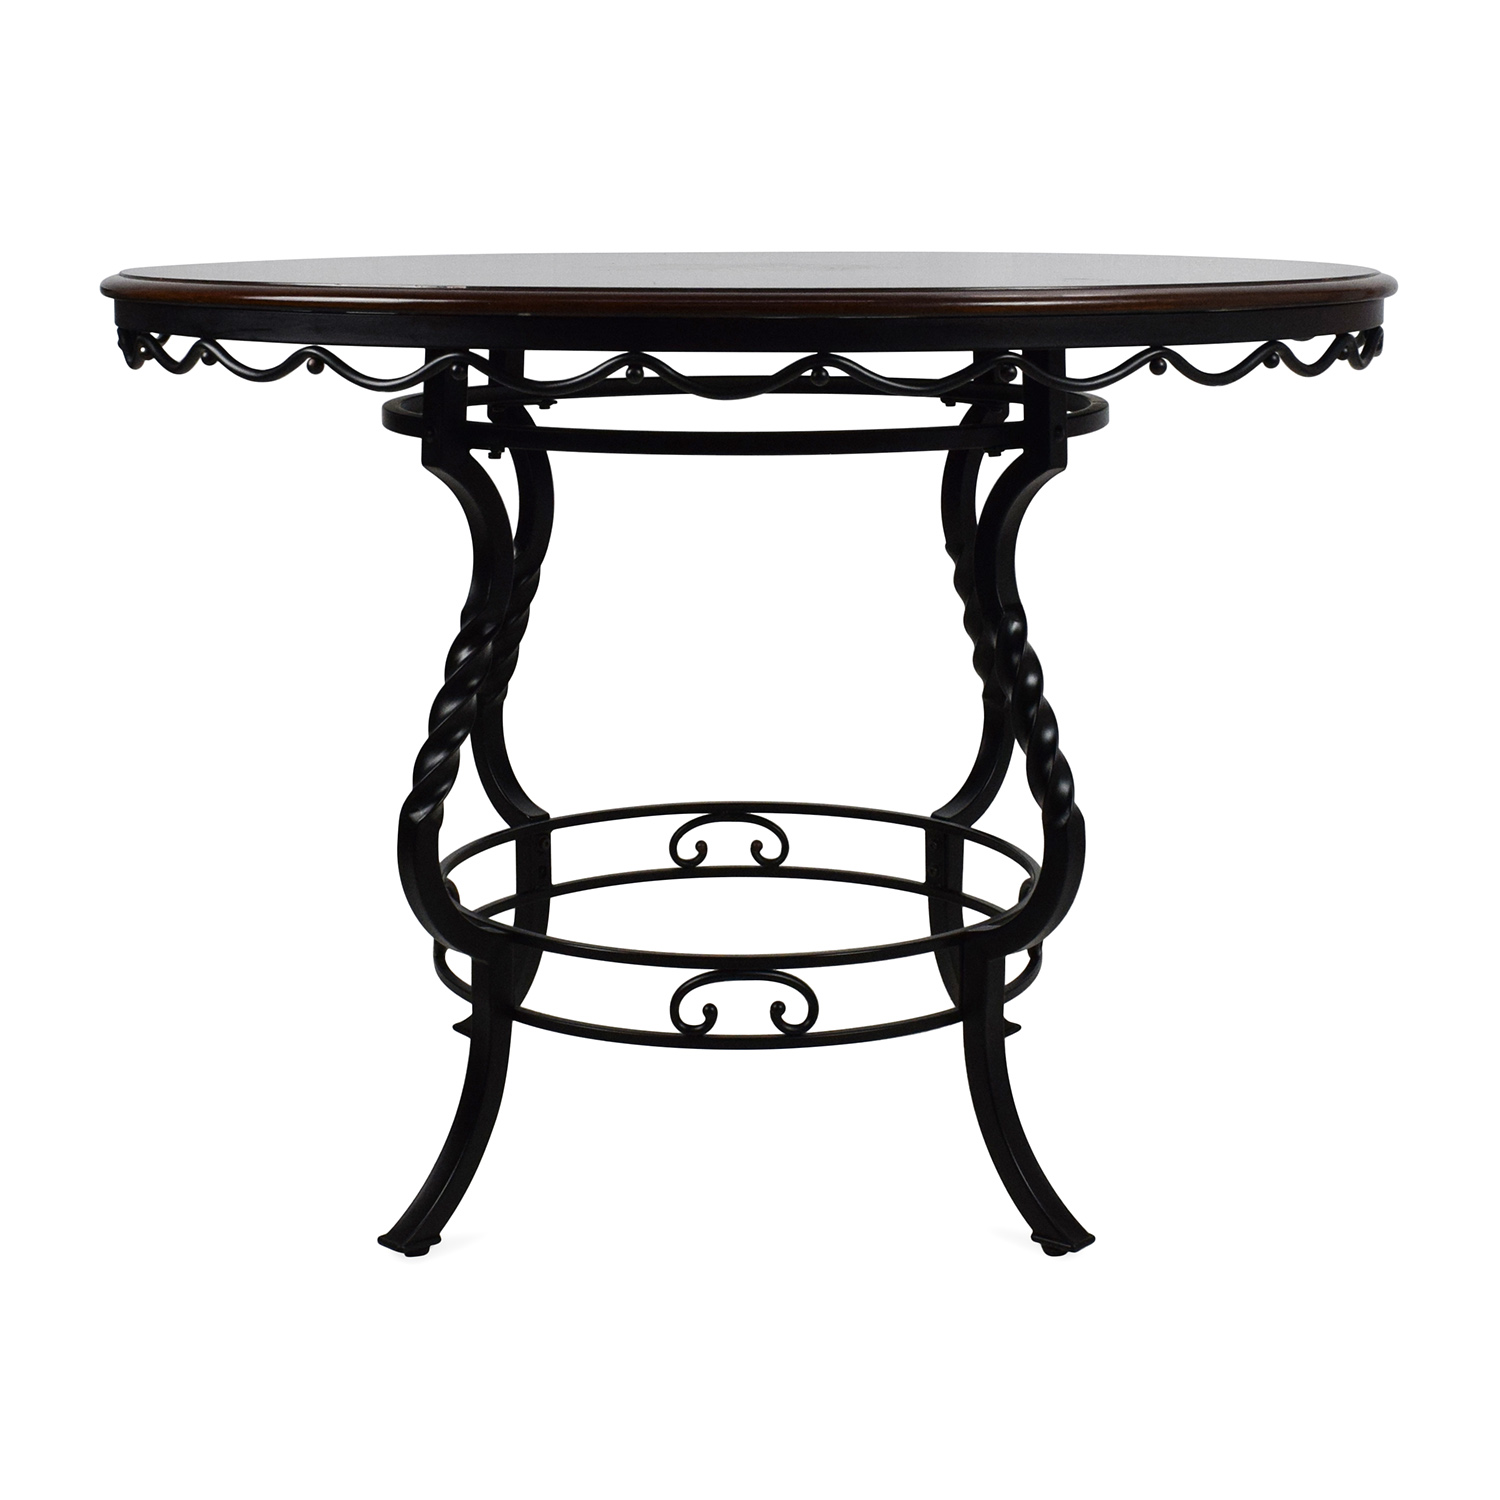 OFF Ashley Furniture Ashley Nola Round Dining Table Tables - Ashley furniture high top table